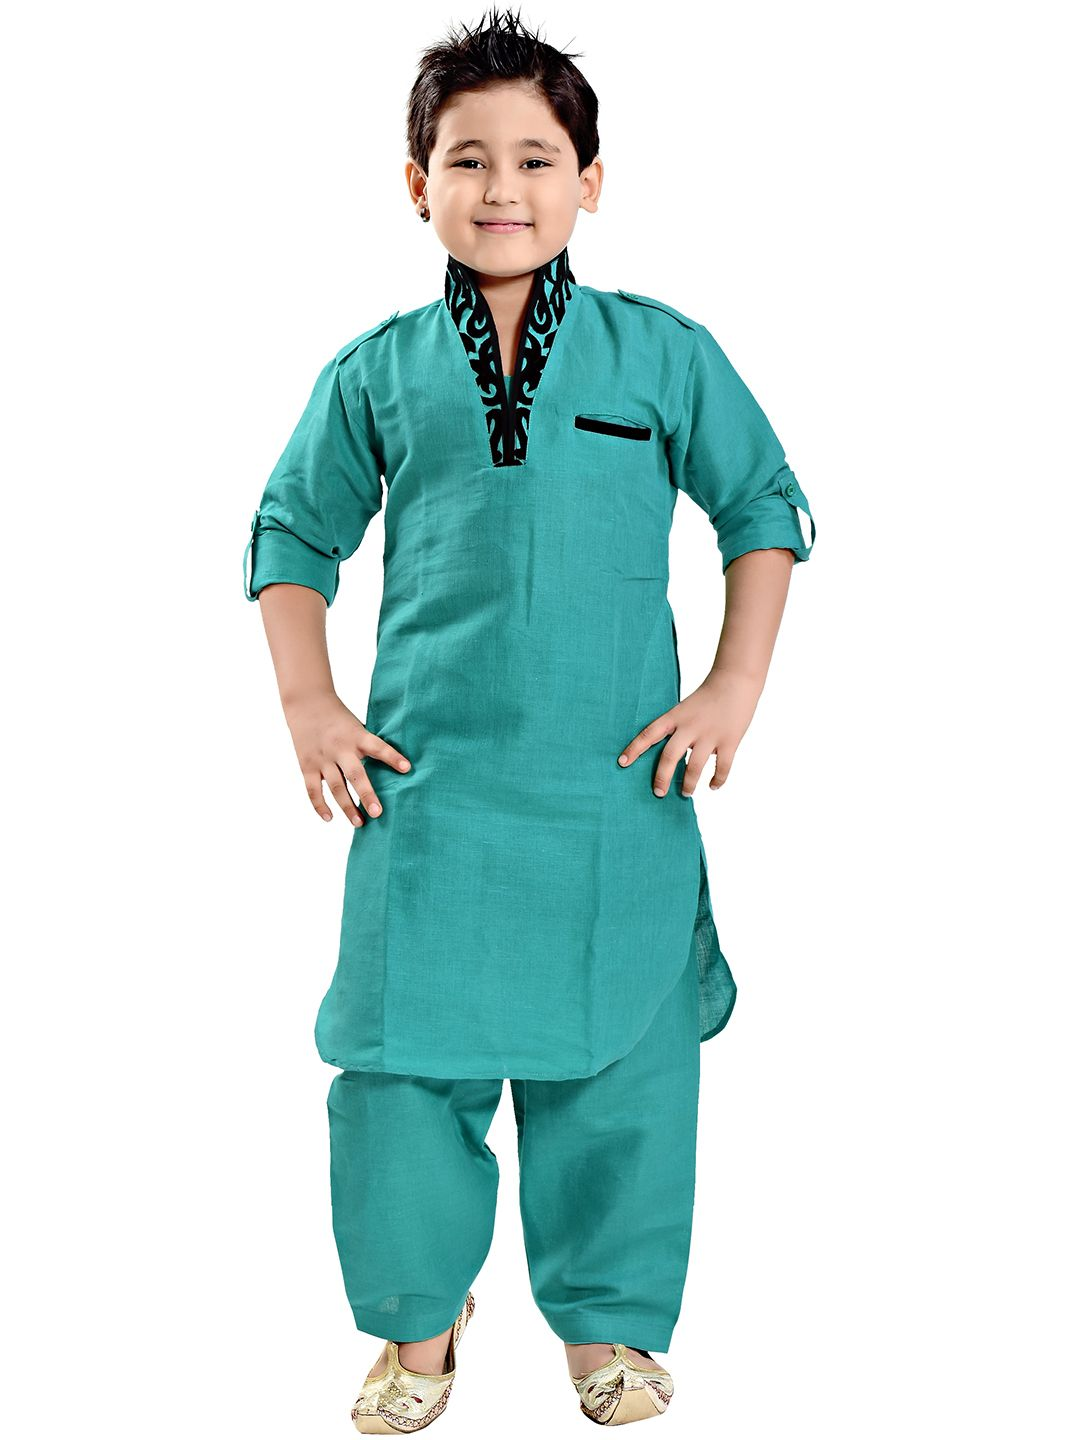 Aqua Green Linen Festive Wear Plain Pathani Suit | Buy Boy\'s Ethnic ...